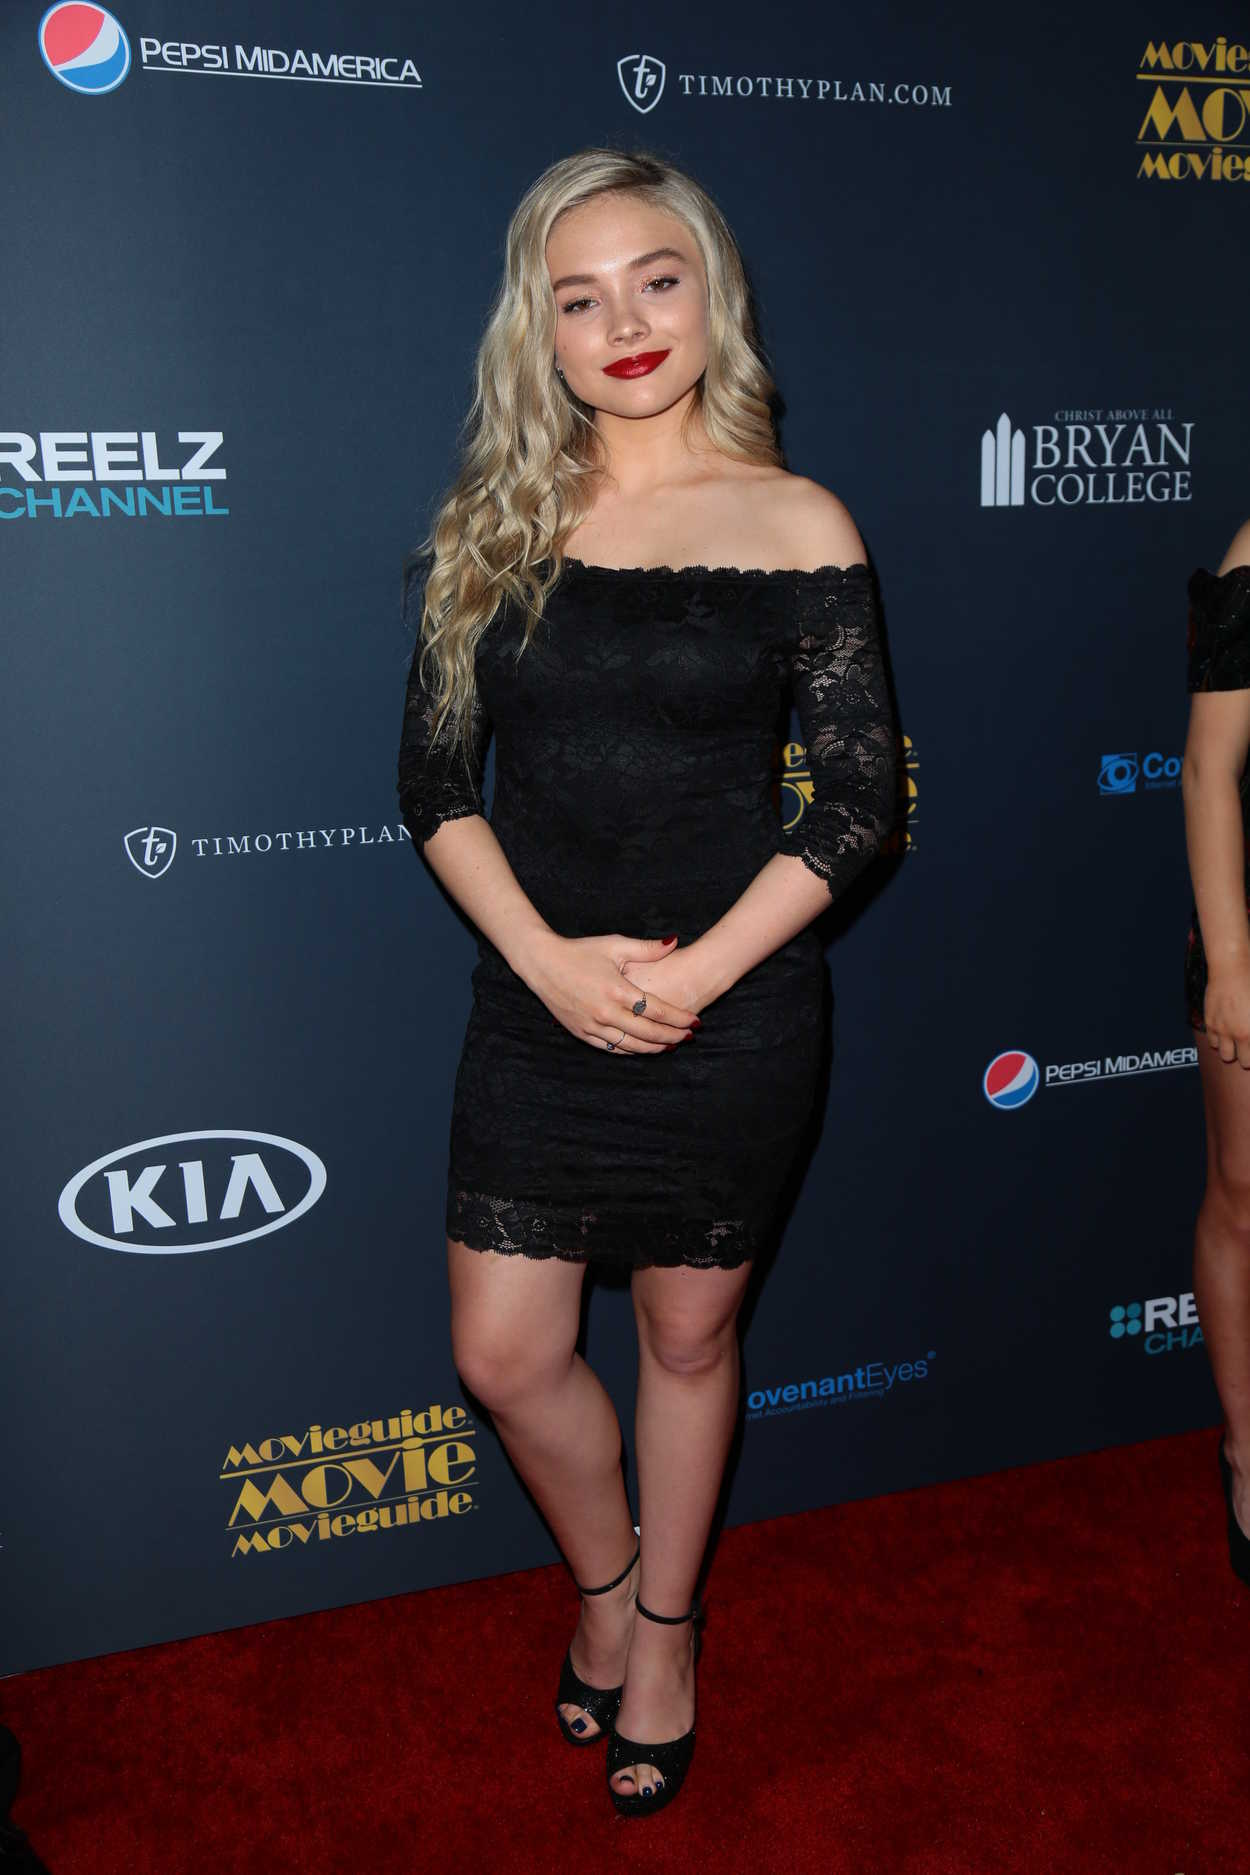 Natalie Alyn Lind At The 25th Annual Movieguide Awards